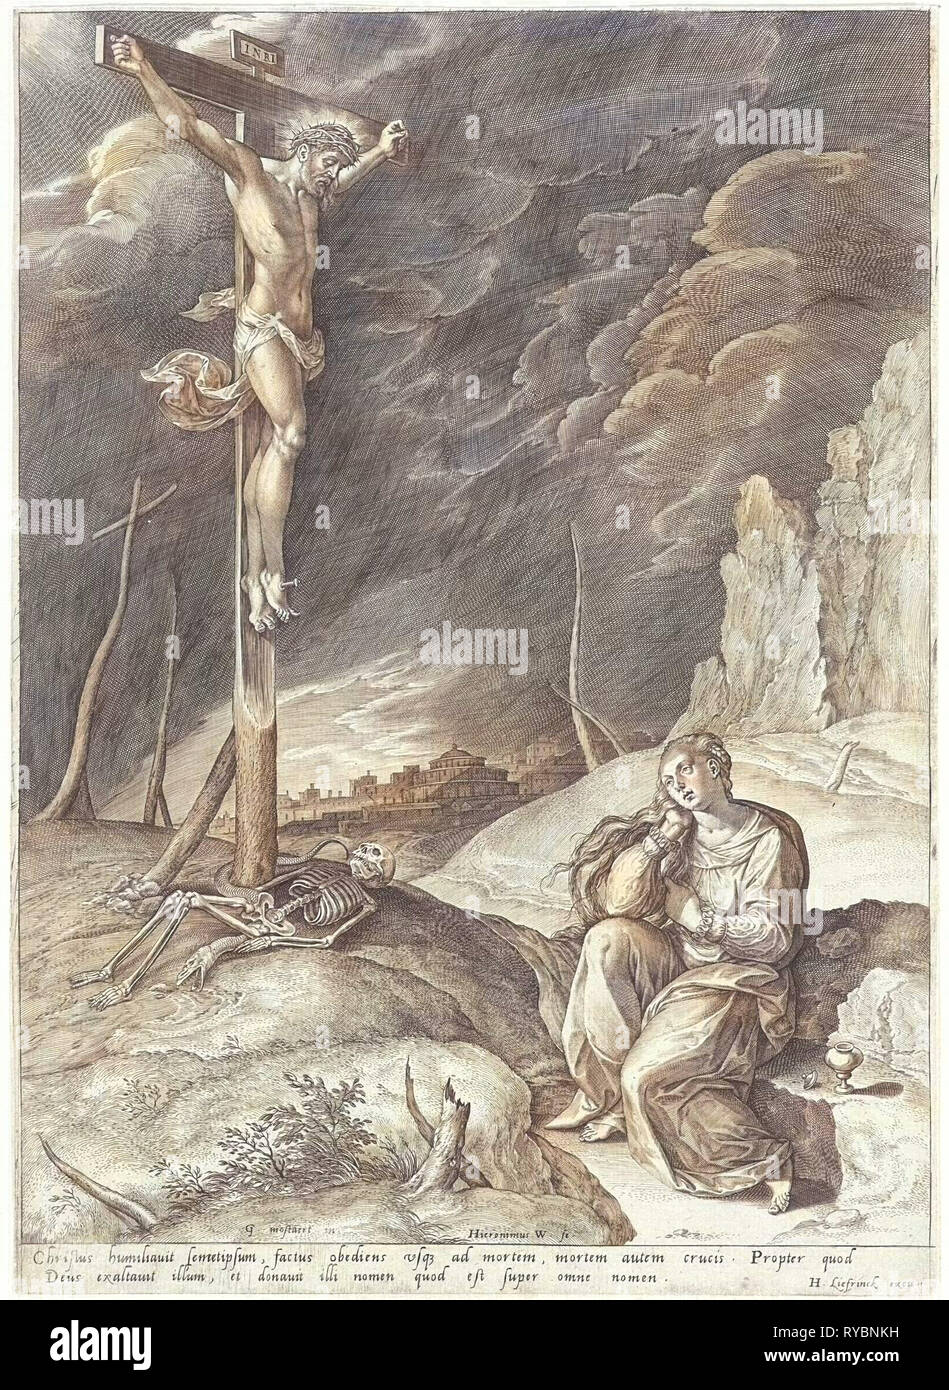 Triumphant Christ on the cross, Hieronymus Wierix, Hans Liefrinck (I), 1563 - before 1573 - Stock Image